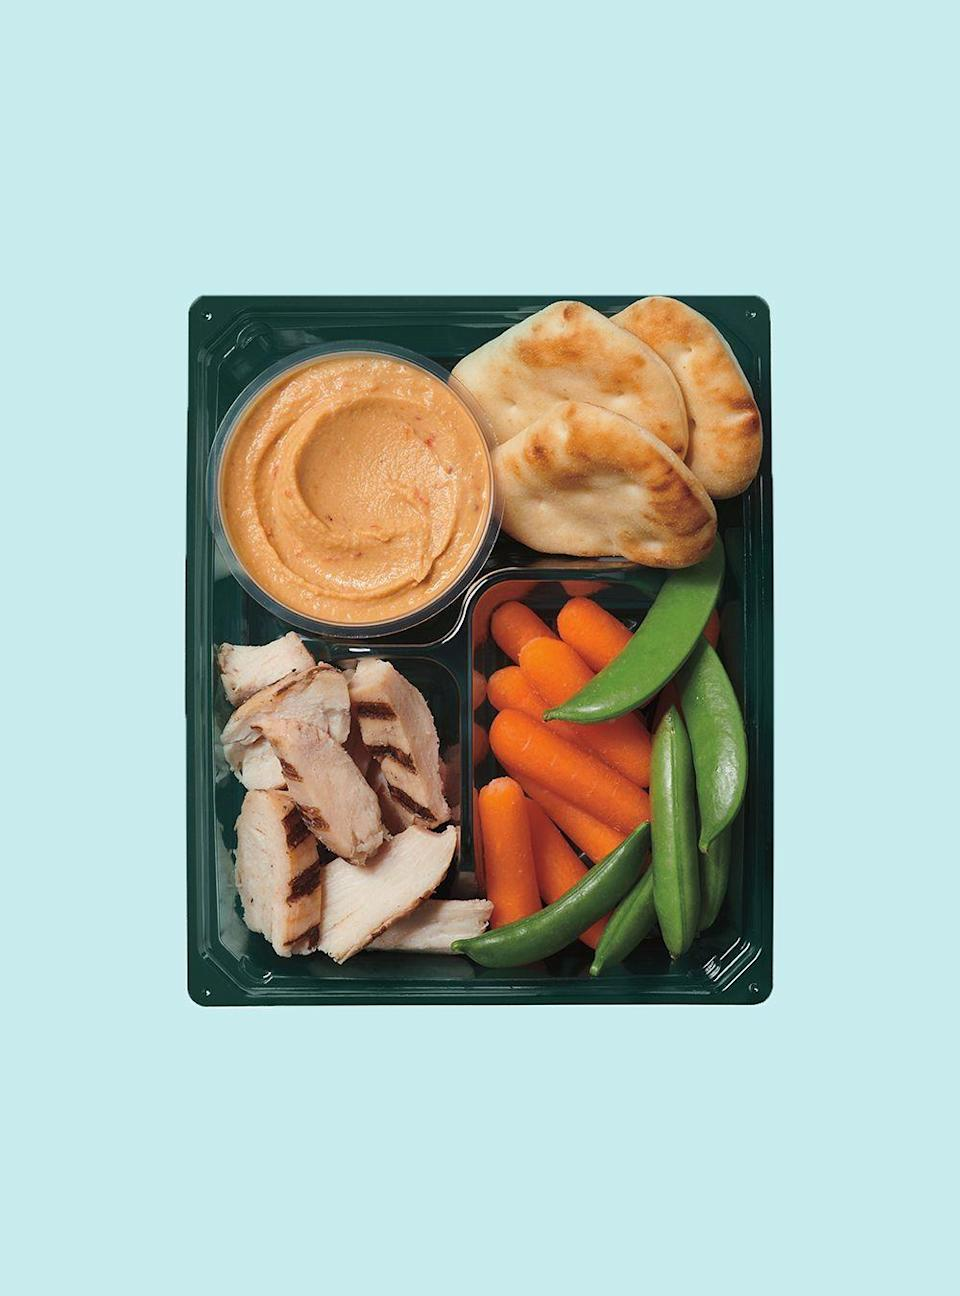 """<p><strong>Starbucks</strong></p><p>starbucks.com</p><p><a href=""""https://www.starbucks.com/menu/product/2123224/single?parent=%2Ffood%2Flunch%2Fprotein-boxes"""" rel=""""nofollow noopener"""" target=""""_blank"""" data-ylk=""""slk:Order Now"""" class=""""link rapid-noclick-resp"""">Order Now</a></p><p><strong>Calories</strong>: 300</p><p><strong>Sodium</strong>: 780mg</p><p><strong>Total Carbohydrates</strong>: 32g</p><p><strong>Protein</strong>: 22g</p><p>It has all the elements of a sandwich, but much less sodium, carbs, and saturated fat. This is likely your best bet for a grab-and-go lunch, Sassos says, and can be enjoyed on a regular basis if Starbucks is your most convenient work-adjacent lunch option.<br></p><p><strong>Nutrition Lab Pro Tip</strong>: Any of the chain's protein boxes are better for you than their paninis, which are overloaded in sodium and saturated fat counts. If you'd like to switch it up, <a href=""""https://www.starbucks.com/menu/product/2122248/single?parent=%2Ffood%2Flunch%2Fprotein-boxes"""" rel=""""nofollow noopener"""" target=""""_blank"""" data-ylk=""""slk:try the Eggs & Cheddar Protein Box"""" class=""""link rapid-noclick-resp"""">try the Eggs & Cheddar Protein Box</a>, which is lower in sodium (but higher in cholesterol). </p>"""